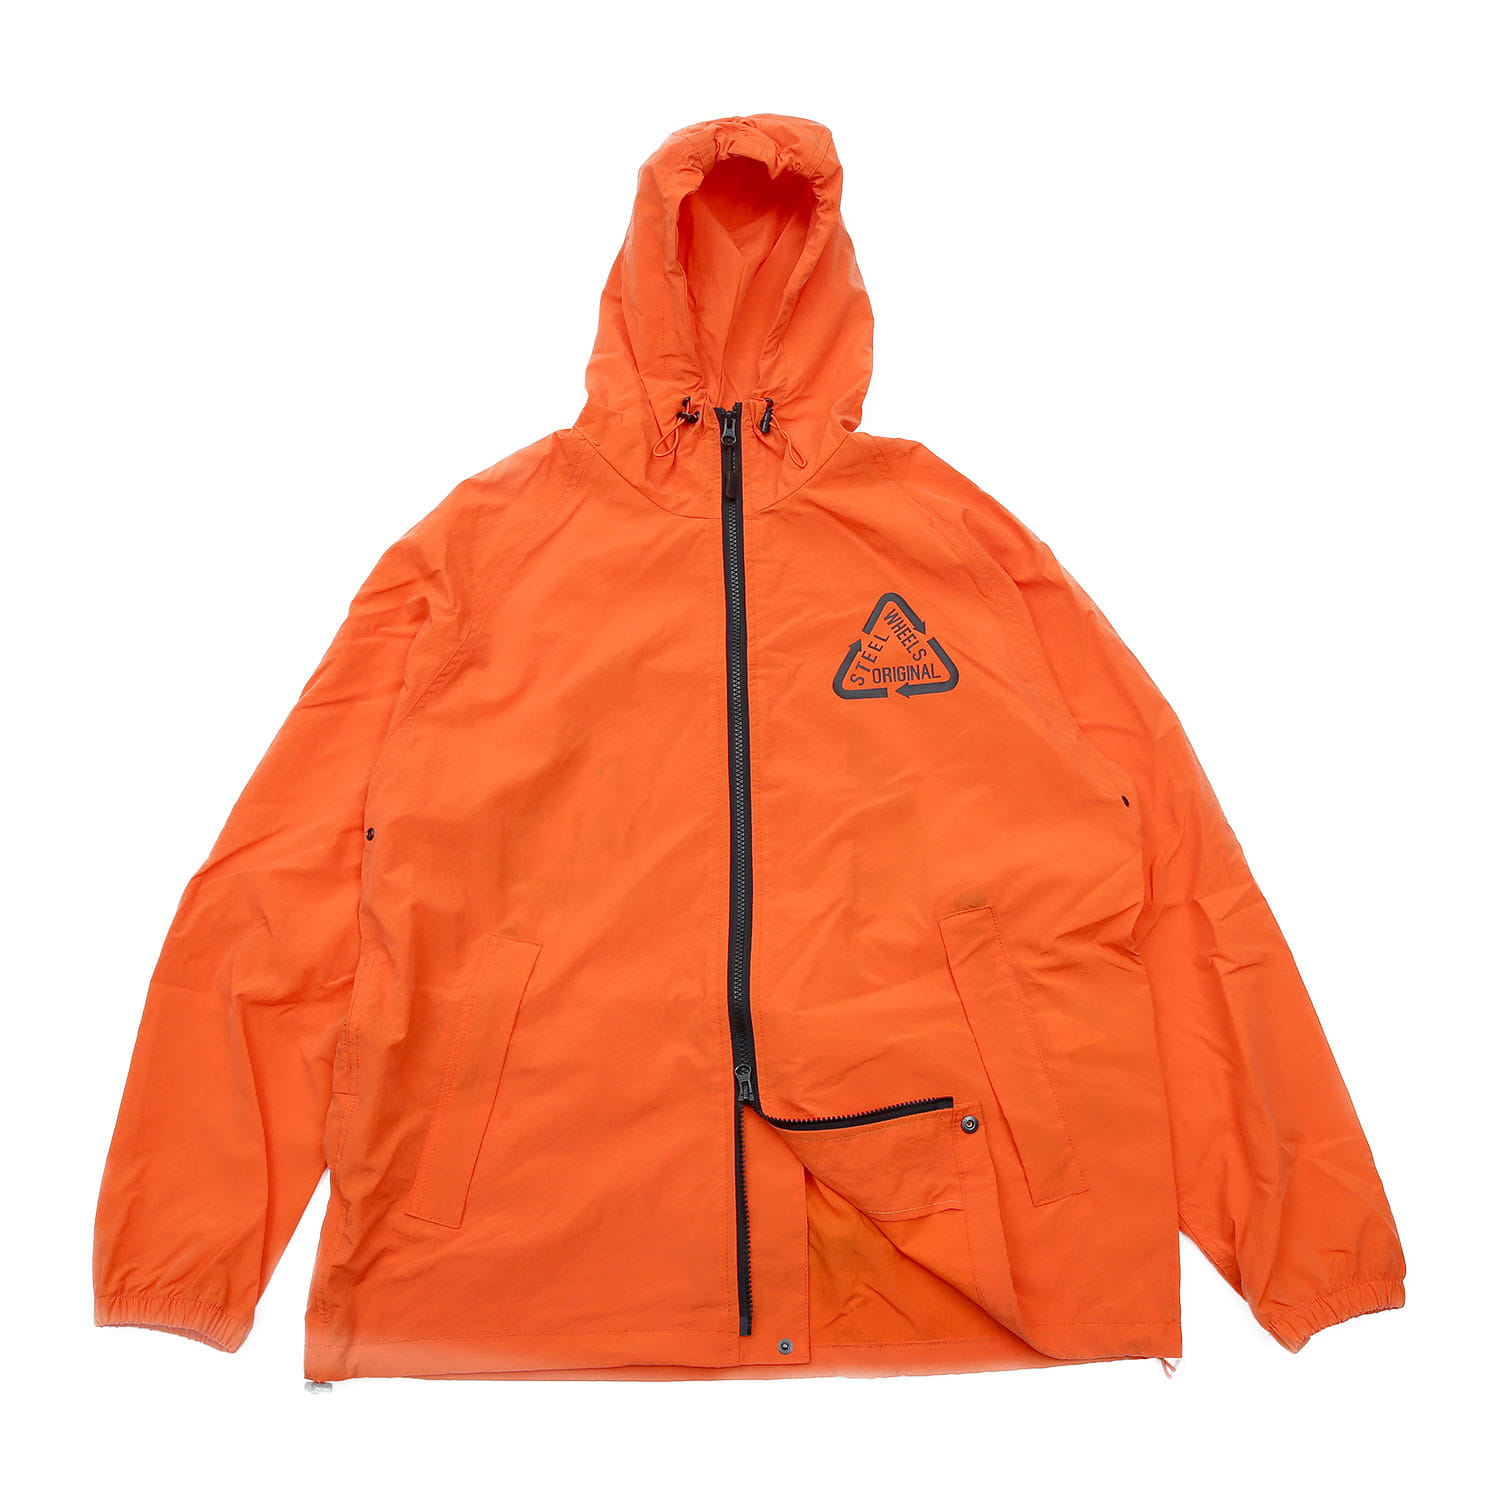 Steelwheels Reflective Nylon JKT (Orange)